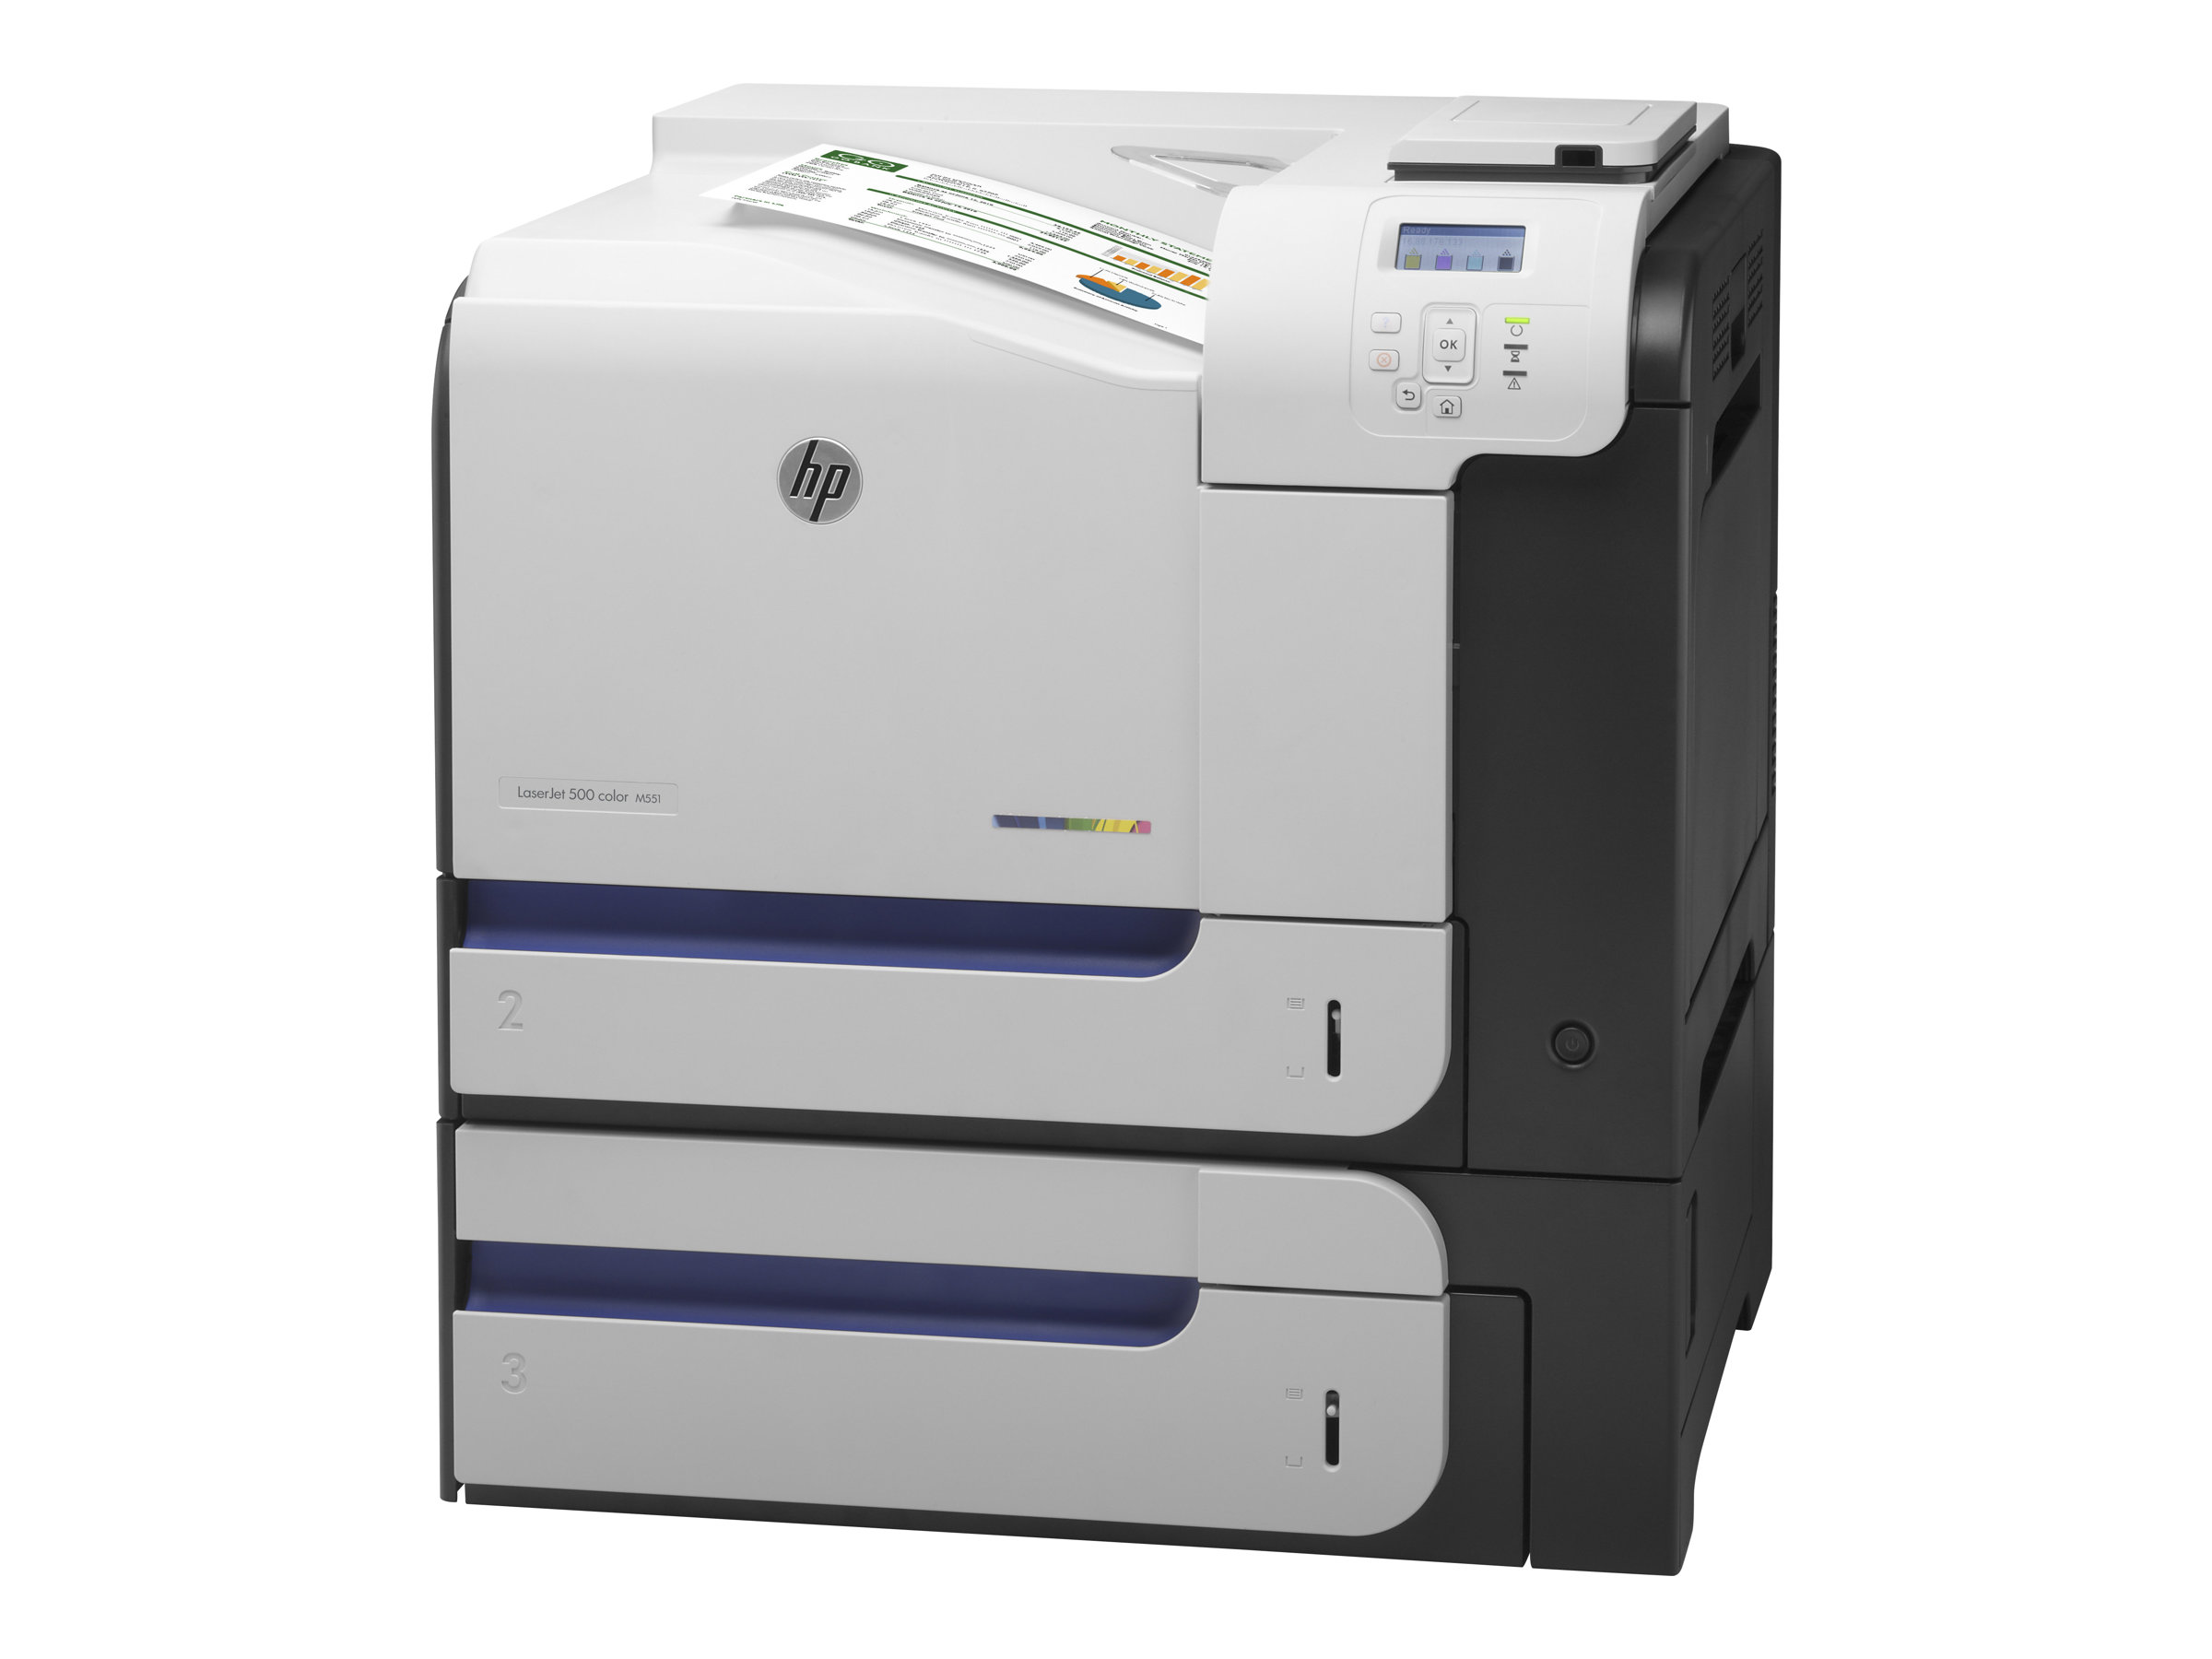 Cartouches laser compatibles avec l'imprimante HP LASERJET ENTERPRISE 500 COLOR M551 XH